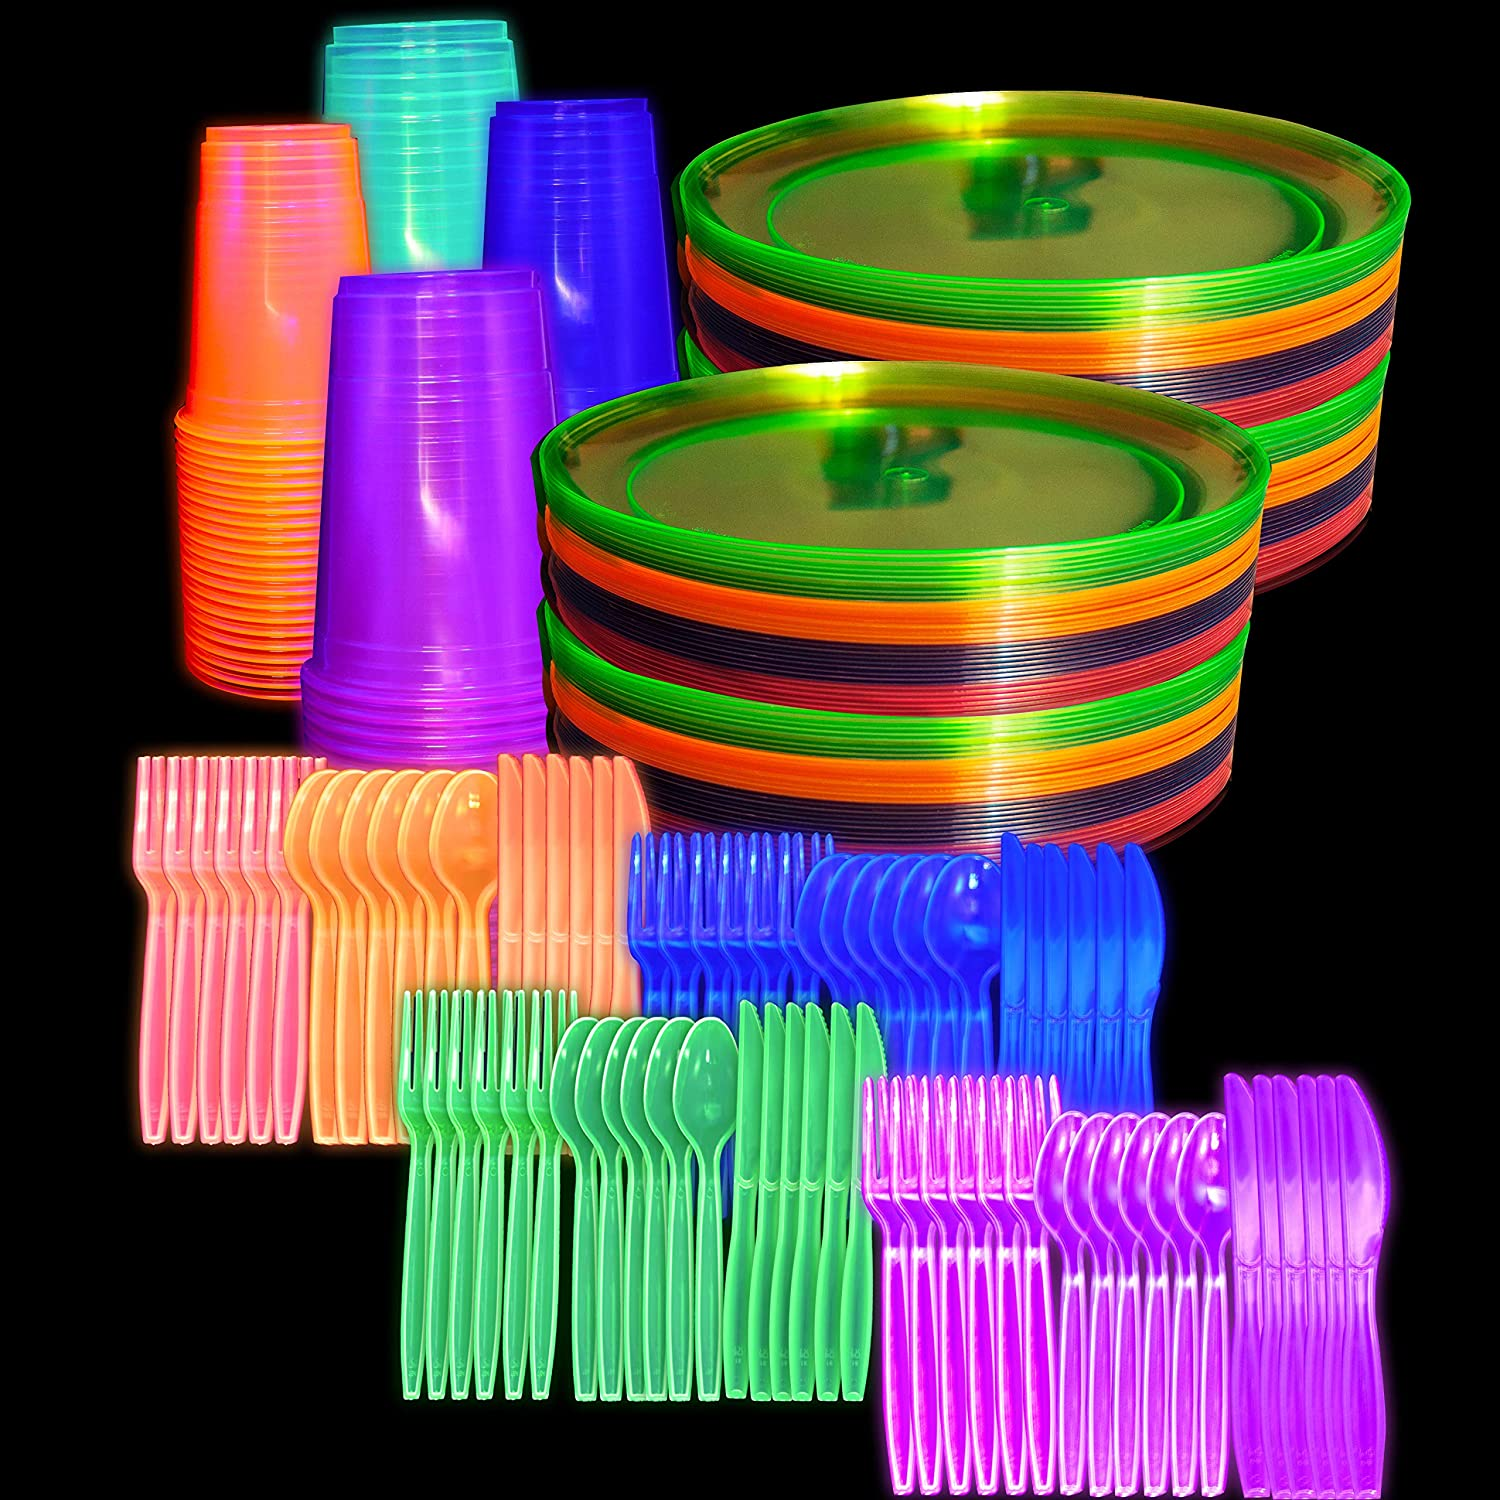 """Neon Black Light Party Supplies Set Serves 80 Guests 9"""" Plates, 10 Oz Cups, Forks, Knives, Spoons Blacklight UV Parties Glow in The Dark Decorations 544 Piece Supply Set"""